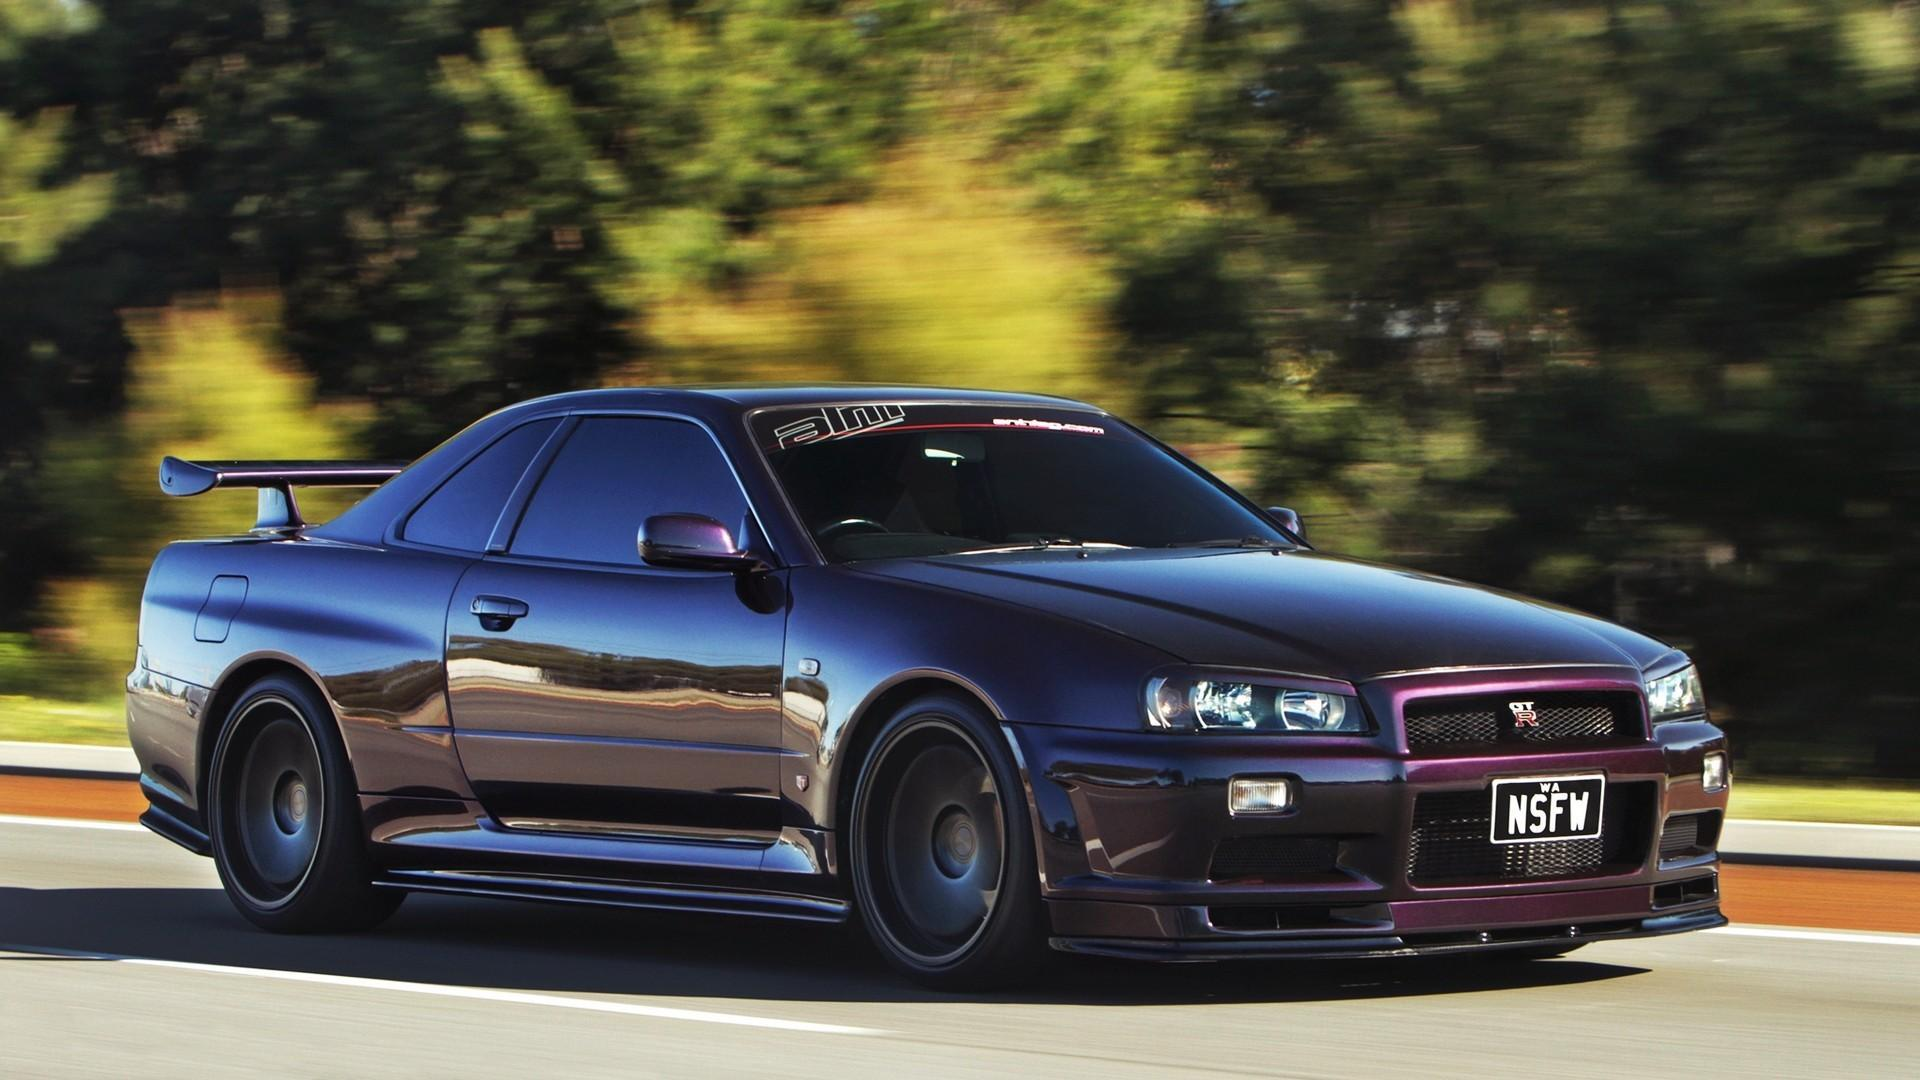 Nissan Skyline R34 Wallpapers Nissan Gtr R34 Wallpaper Hd Hd